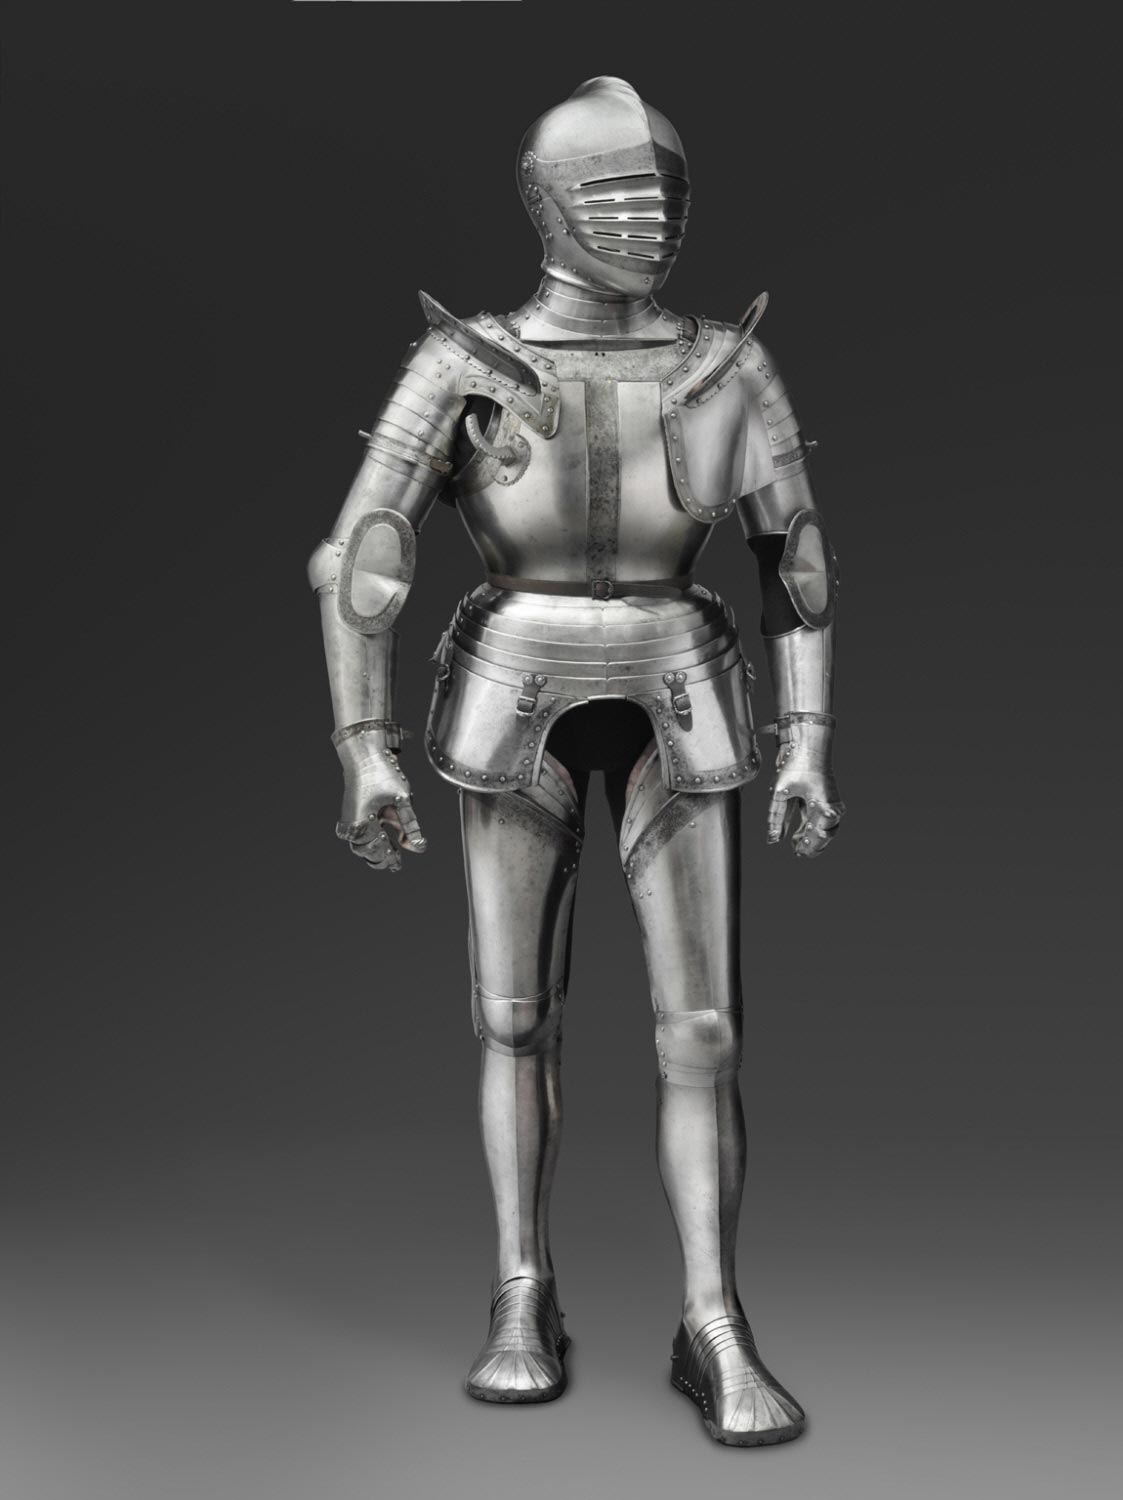 Armor for use on horseback in the field